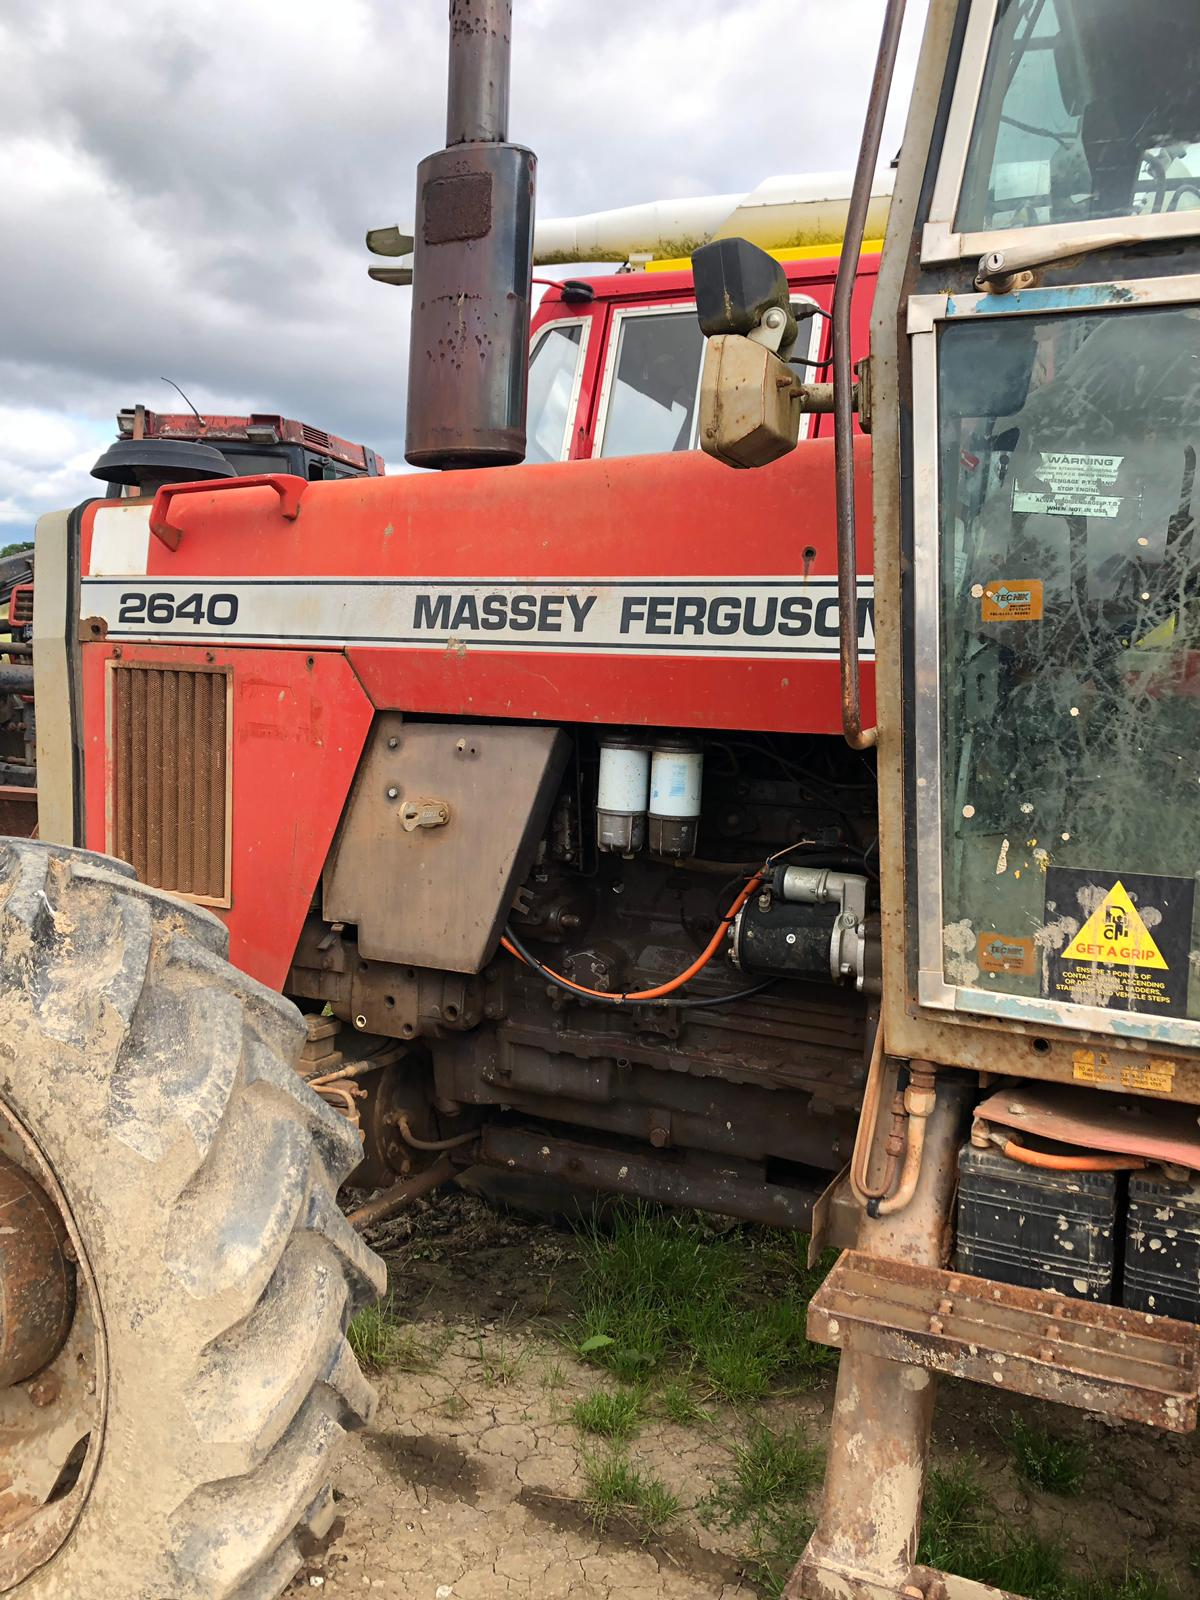 Lot 110 - MASSEY FERGUSON 2640 RED TRACTOR, RUNS AND WORKS, SHOWING - 6489 HOURS *PLUS VAT*